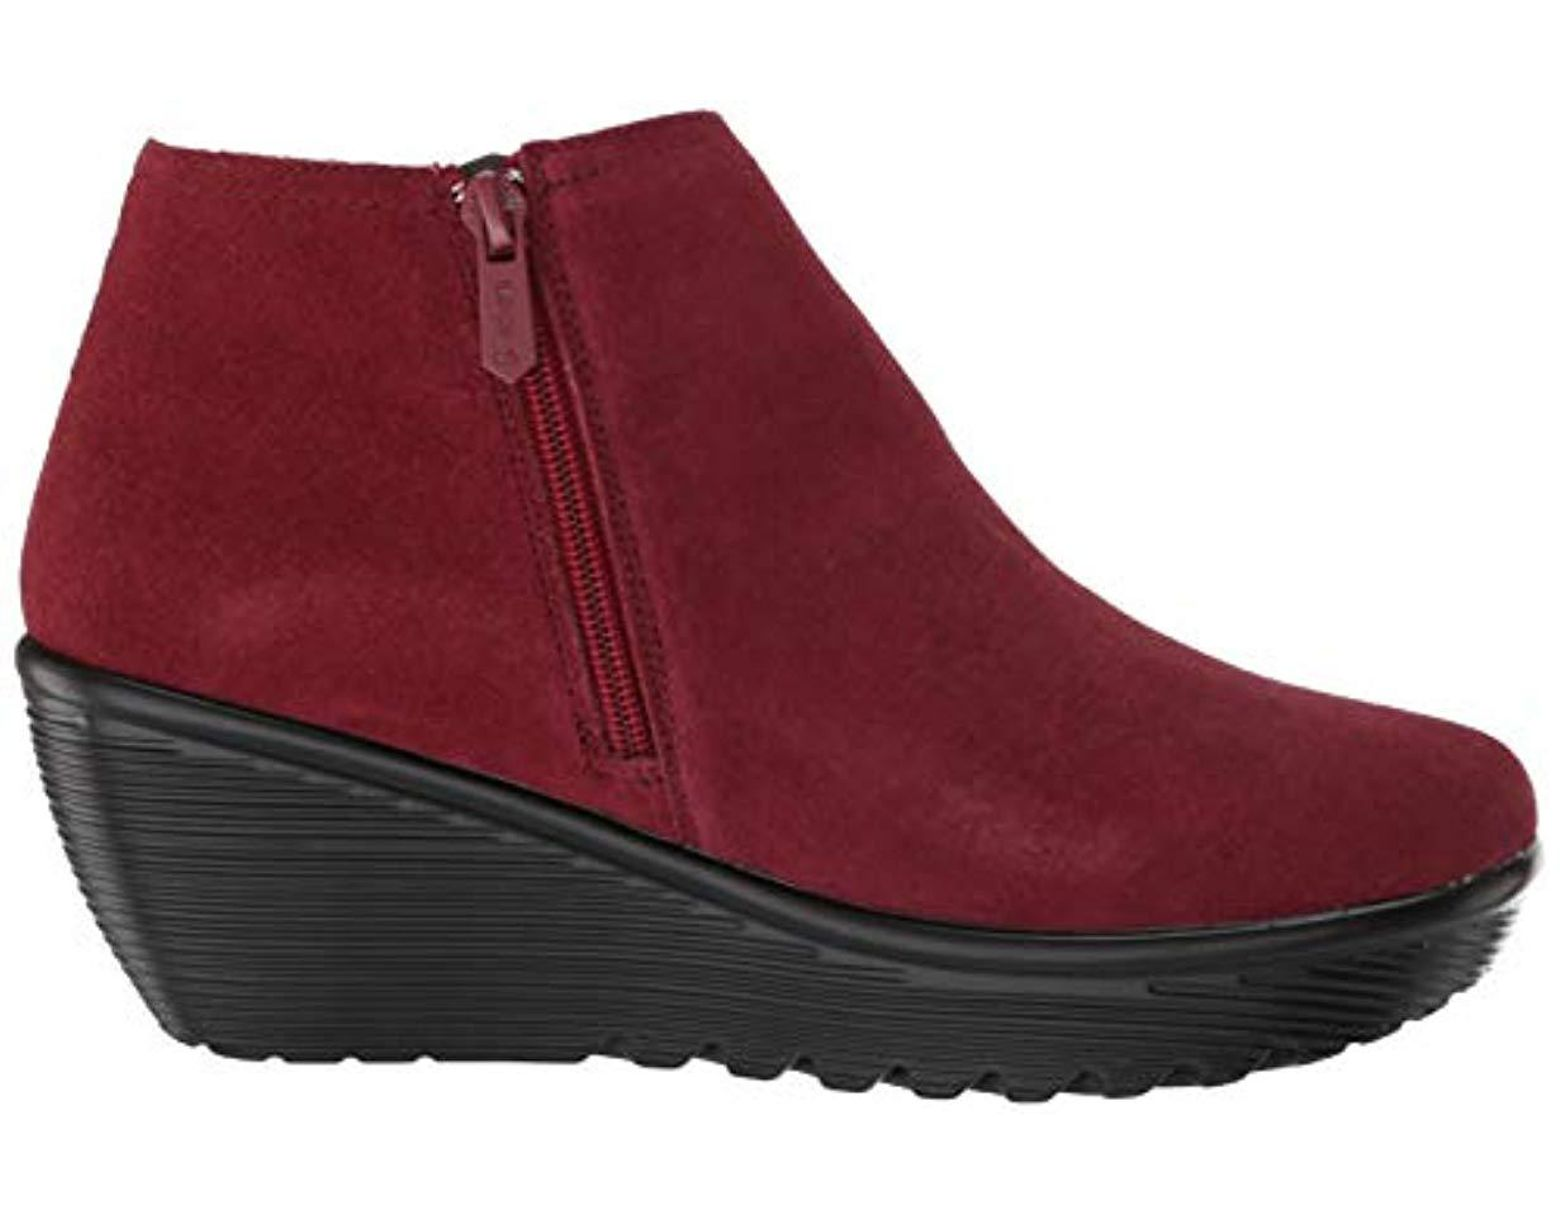 68b288dd8a3 Women's Parallel-ditto-asymmetrical Collar Suede Bootie Ankle Boot